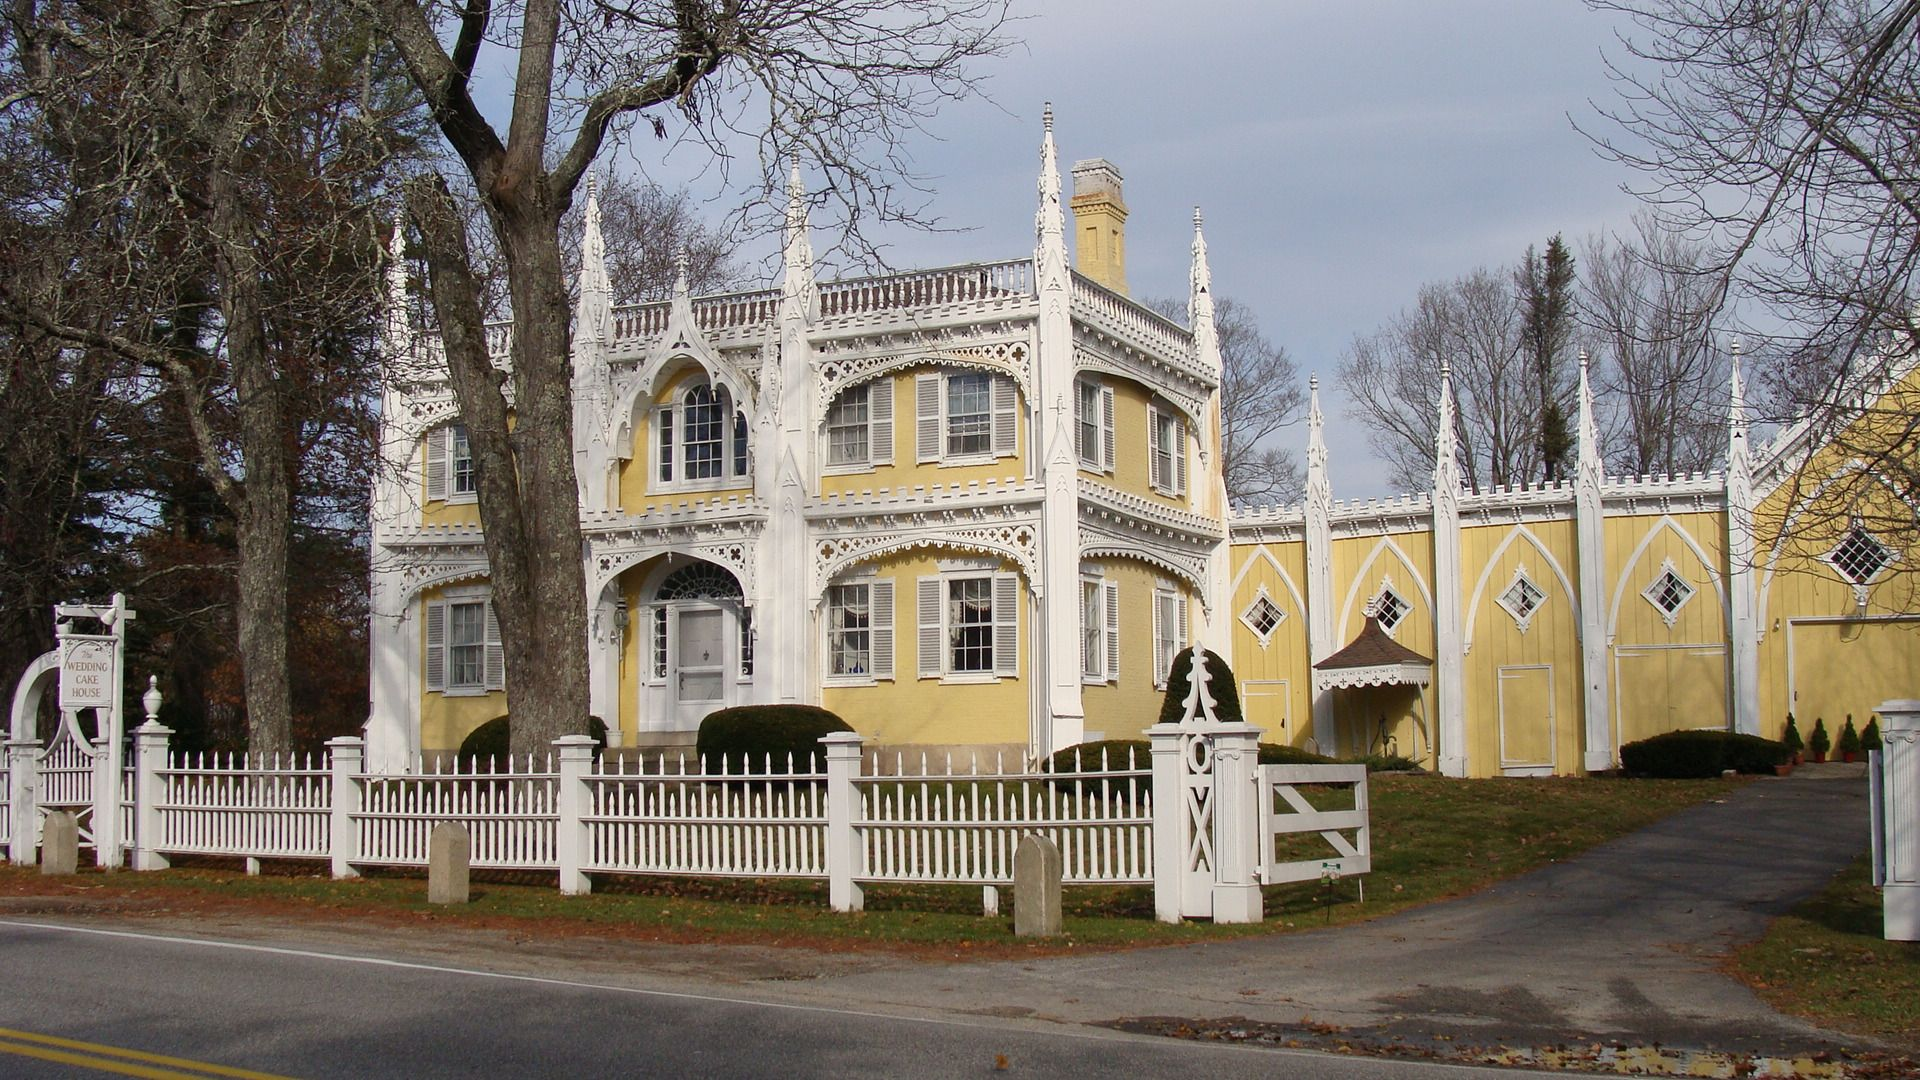 Wedding Cake House In Kennebunk Maine Called The Most Photographed